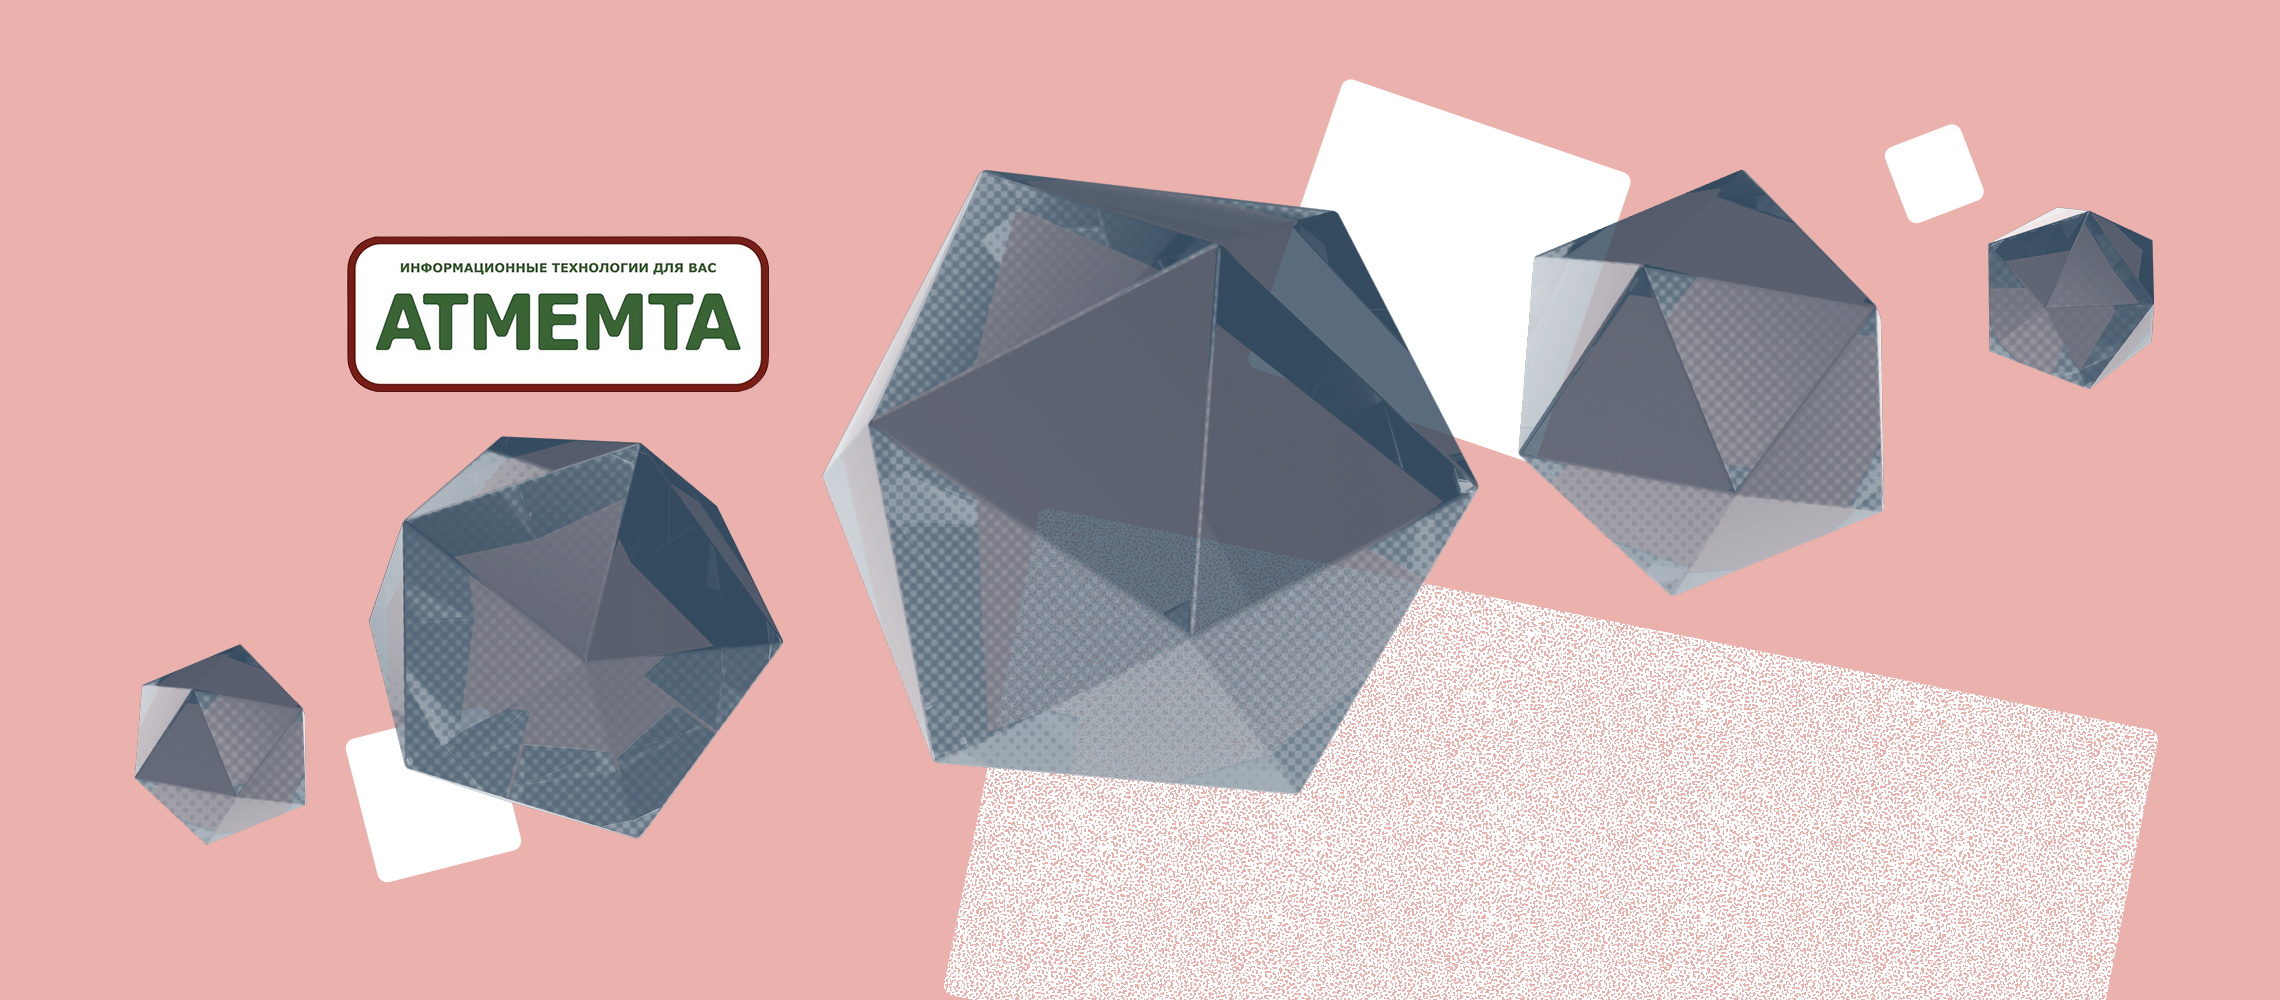 How to reduce the cost of ownership of IT assets. Why ATMEMTA started a hosting with VMmanager